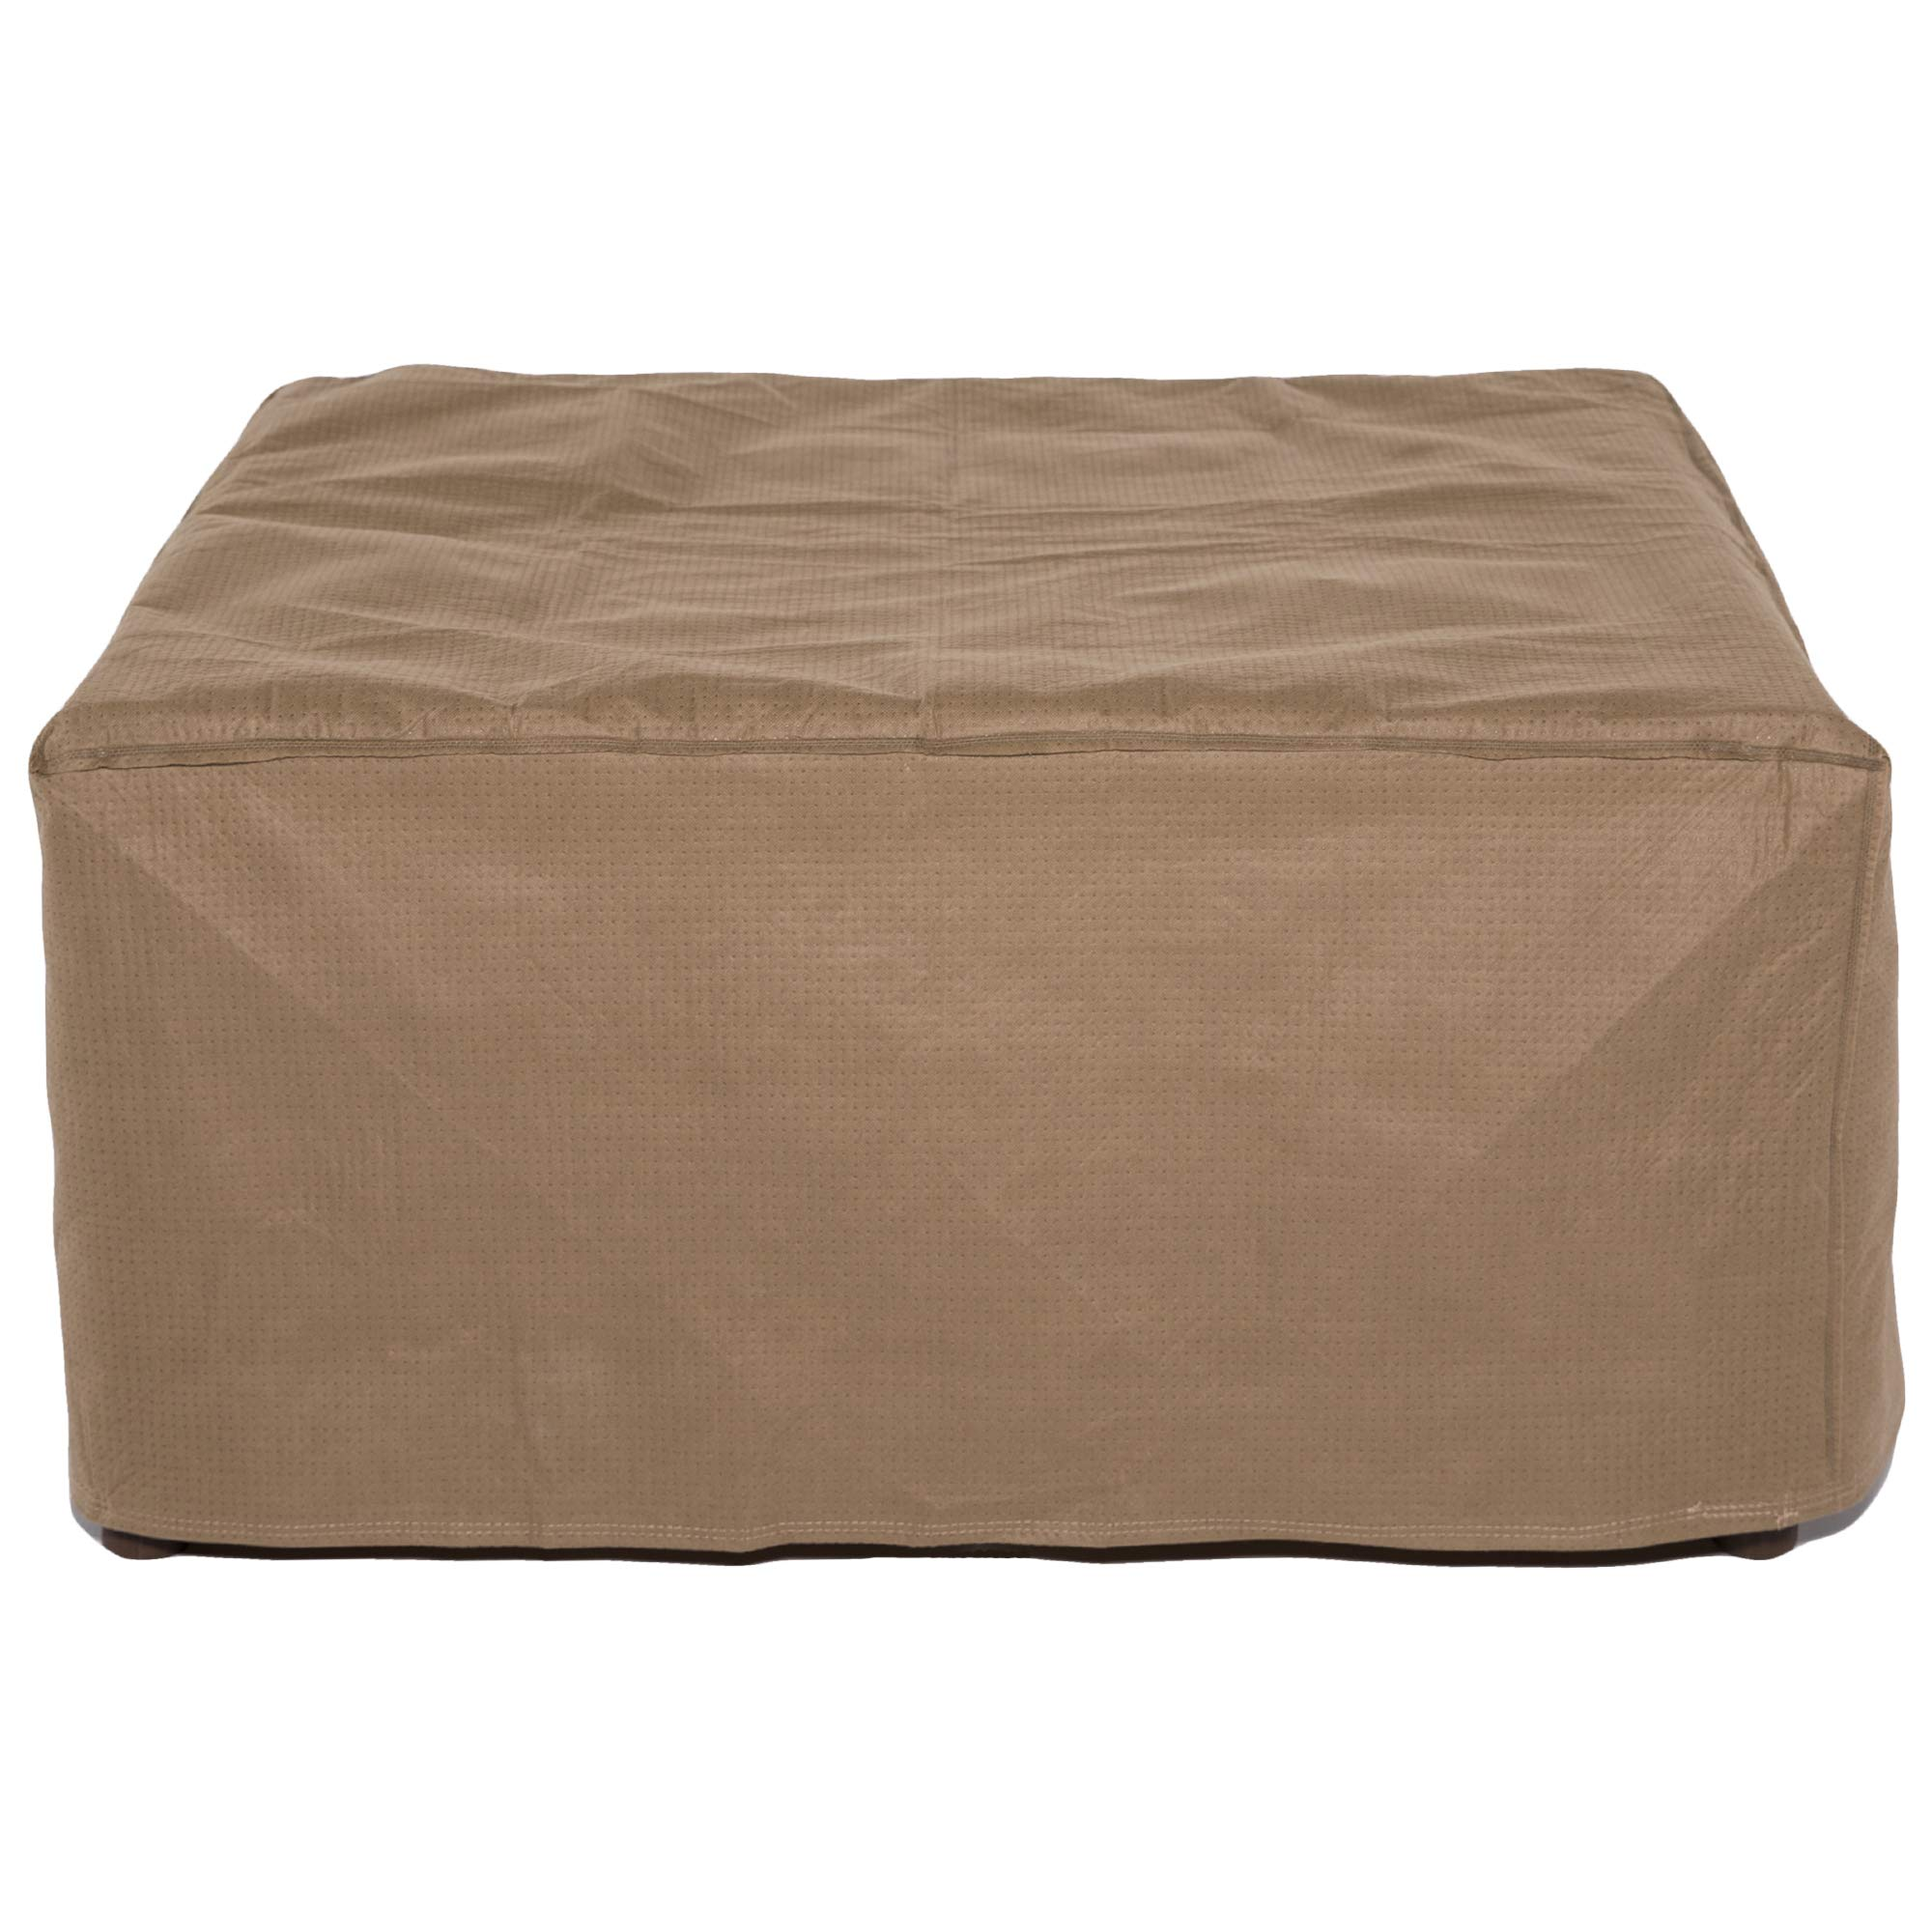 Duck Covers Essential Rectangular Patio Ottoman or Side Table Cover, 52'' L x 30'' W x 18'' H